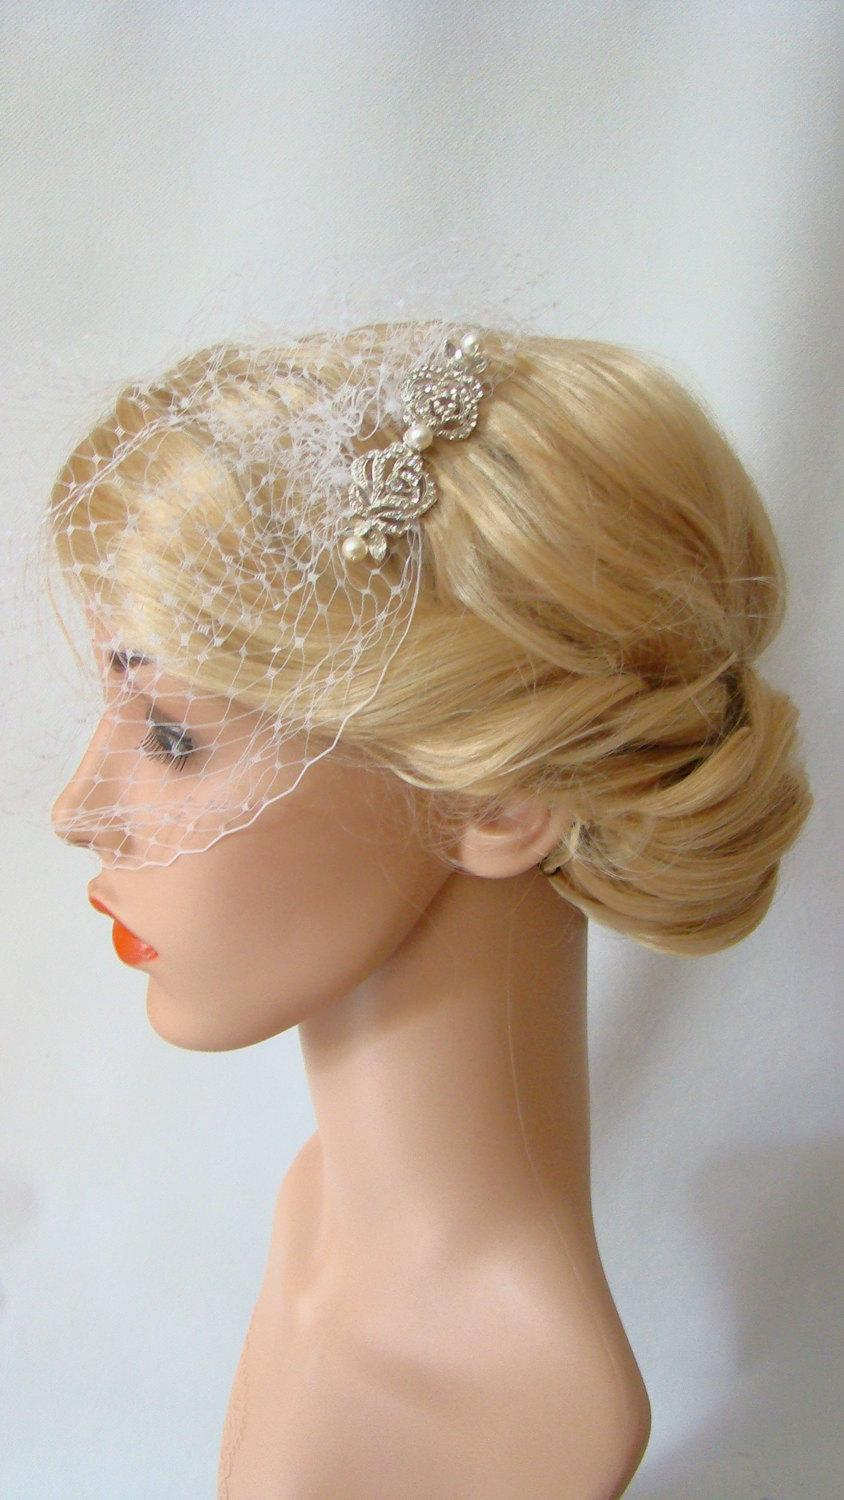 Wedding - Bird Cage Veil, Ivory Birdcage Veil and Fascinator, Silver Hair Comb, 2 Pieces Set, Detachable Veil